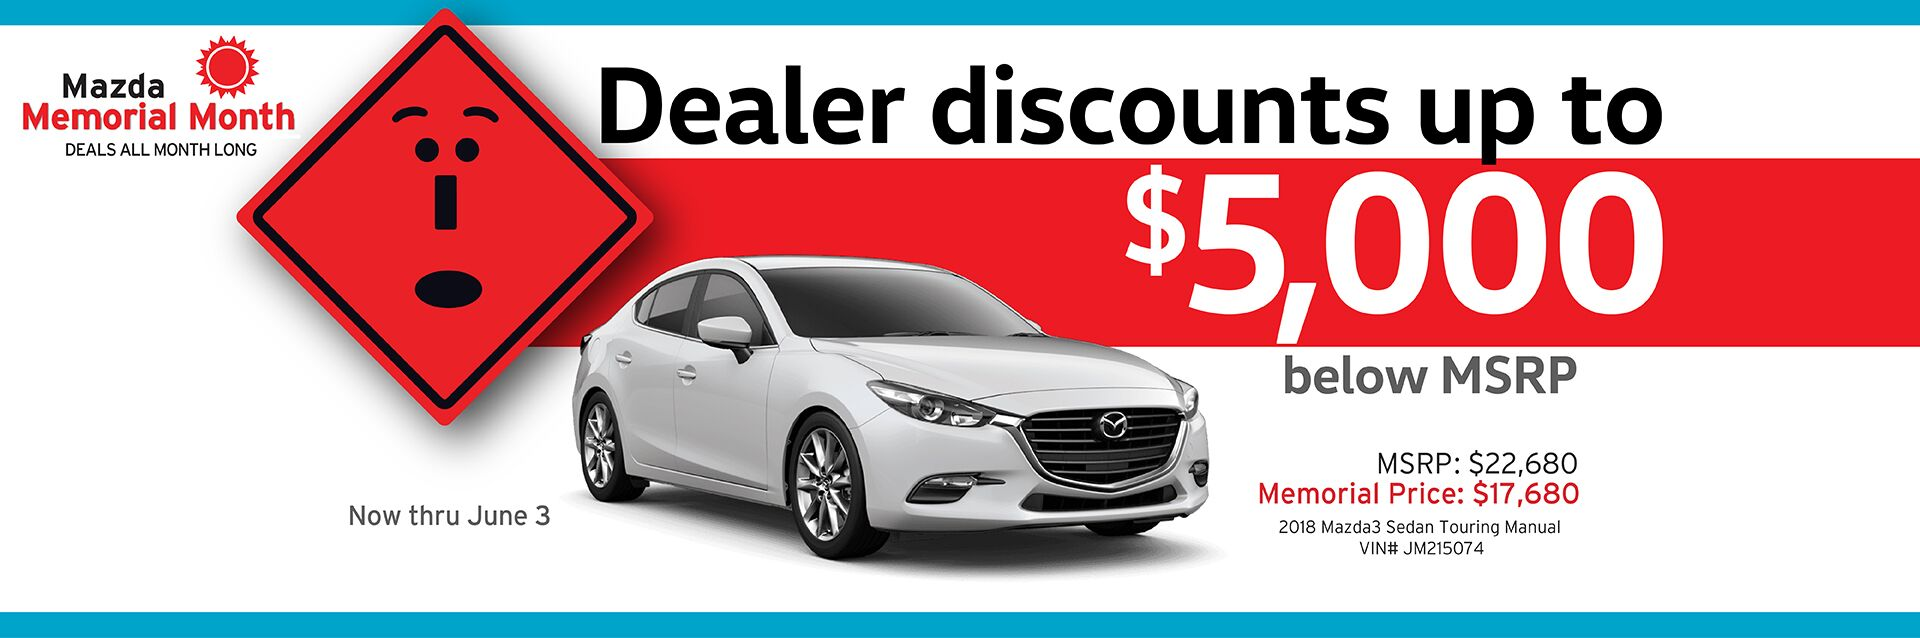 Capistrano Mazda Memorial Month - Contact us for your special Memorial Price now thru June 3rd